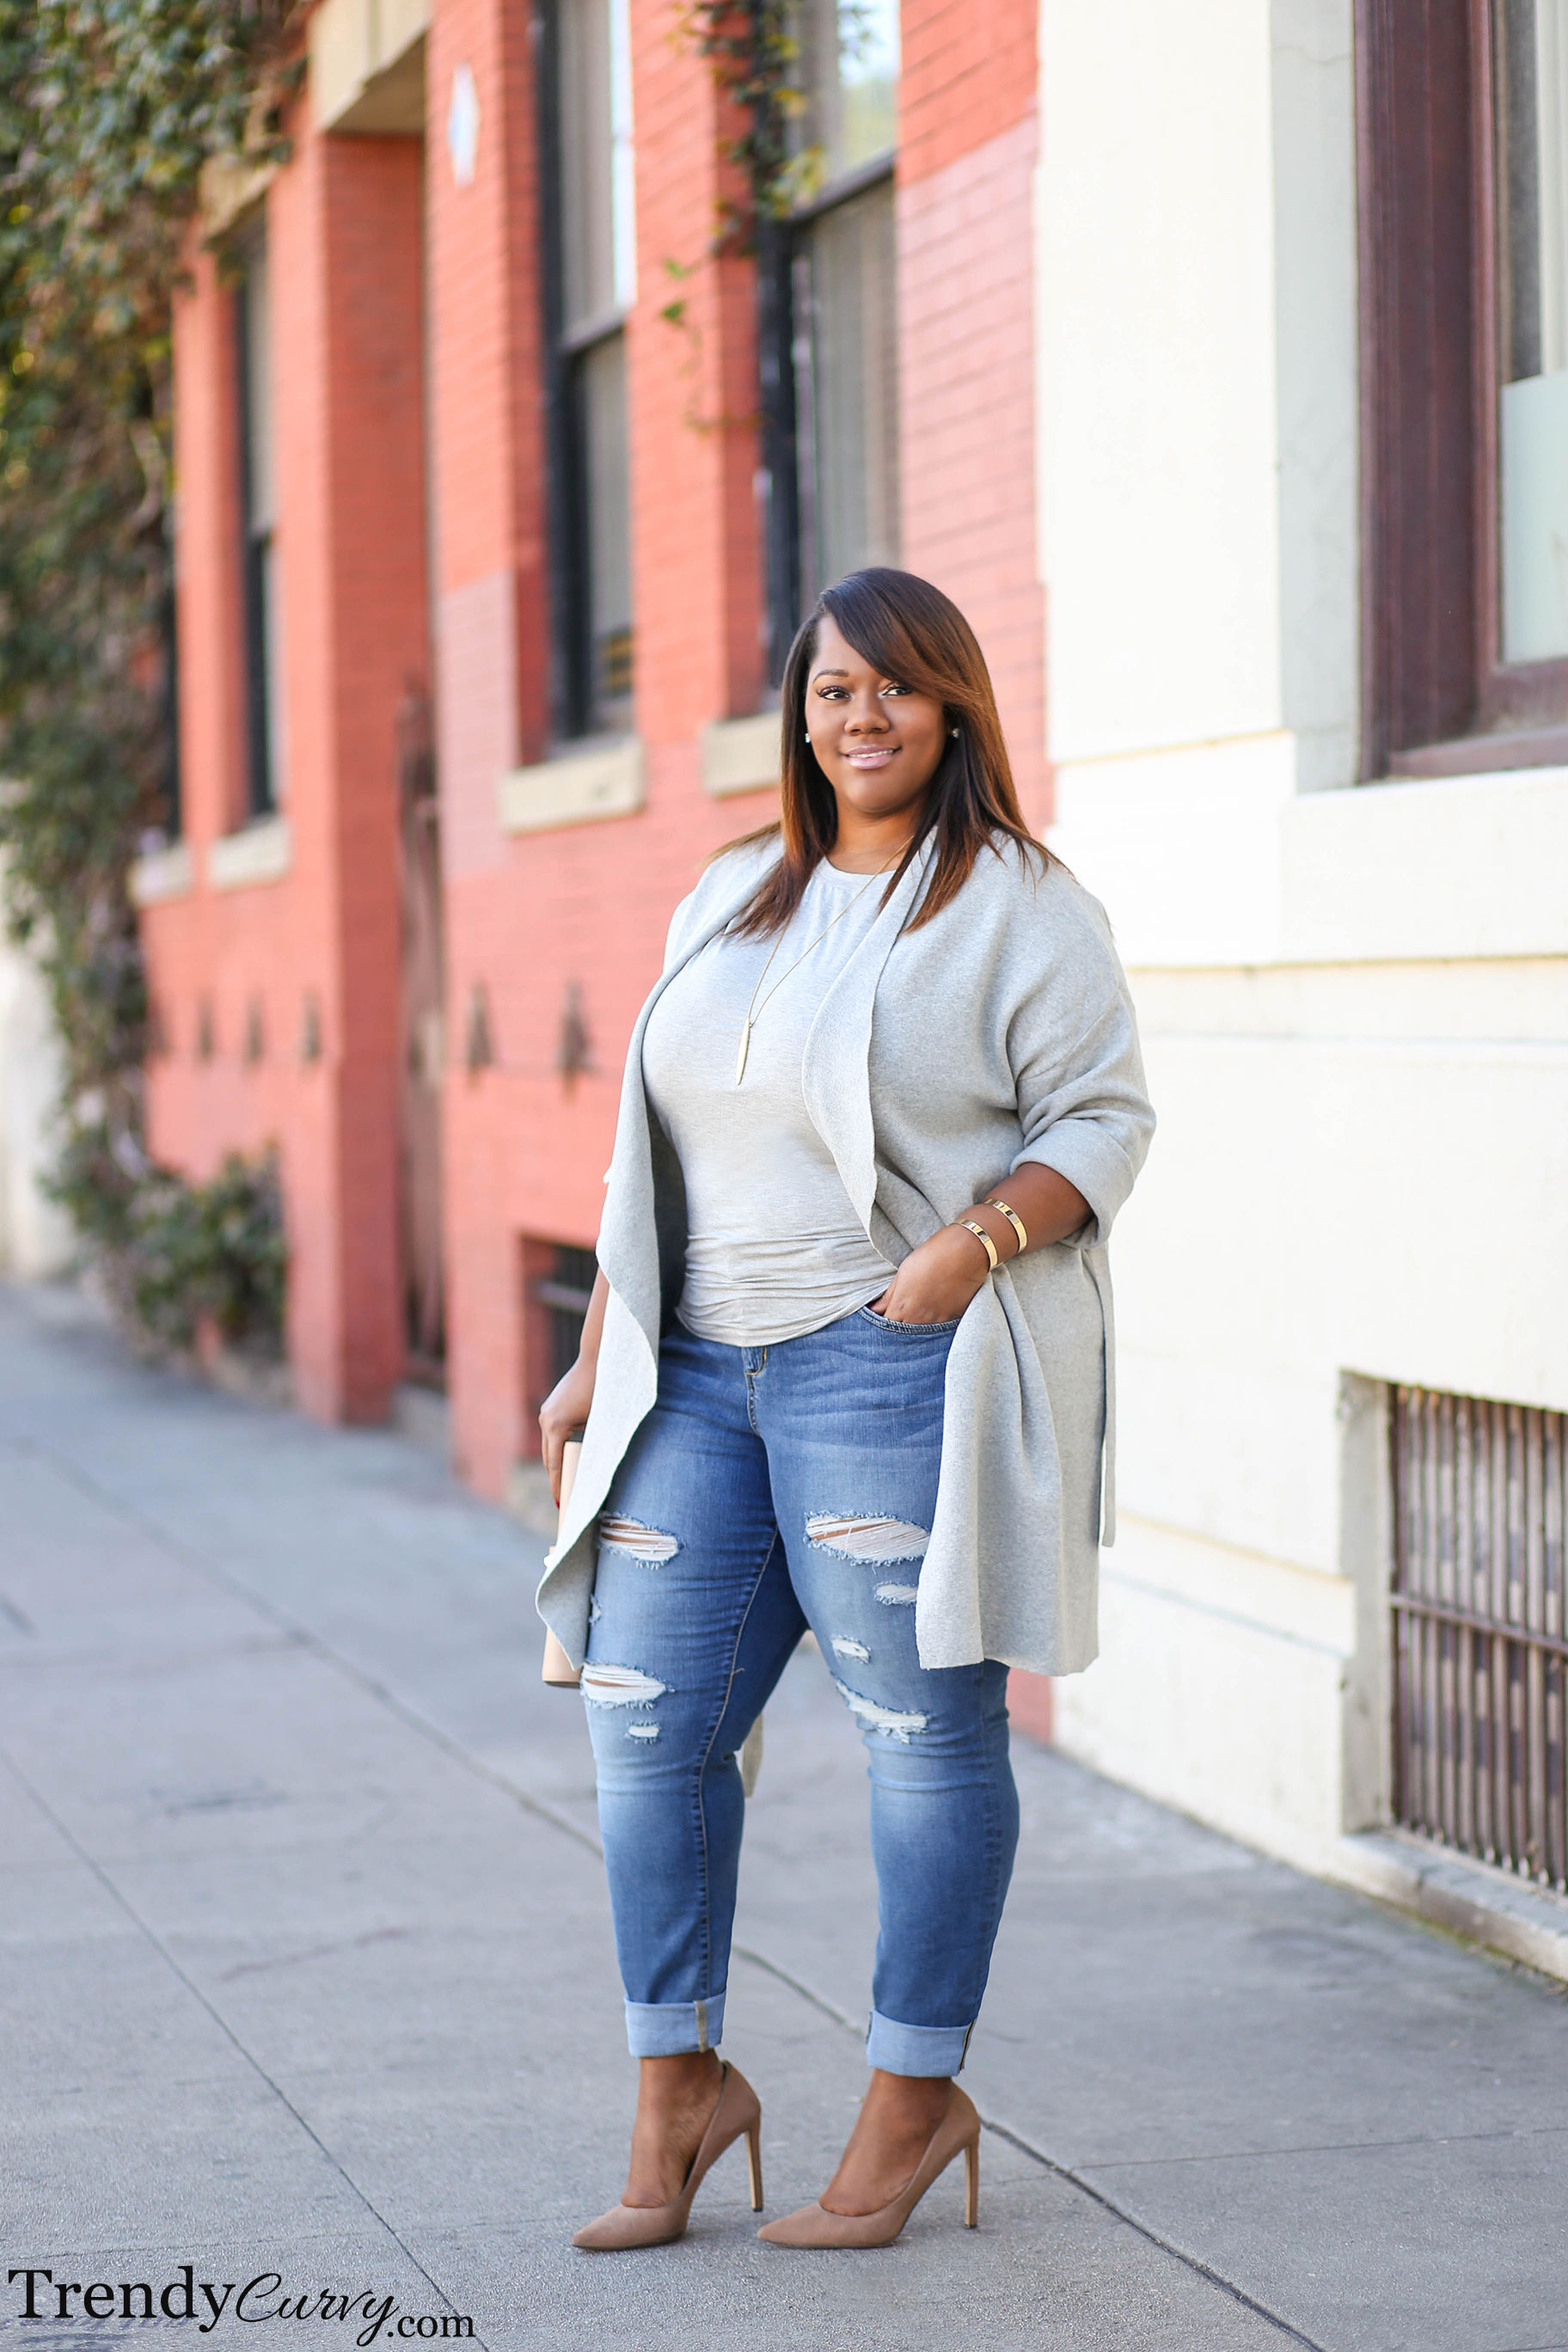 Plus Size Fashion BlogTrendy